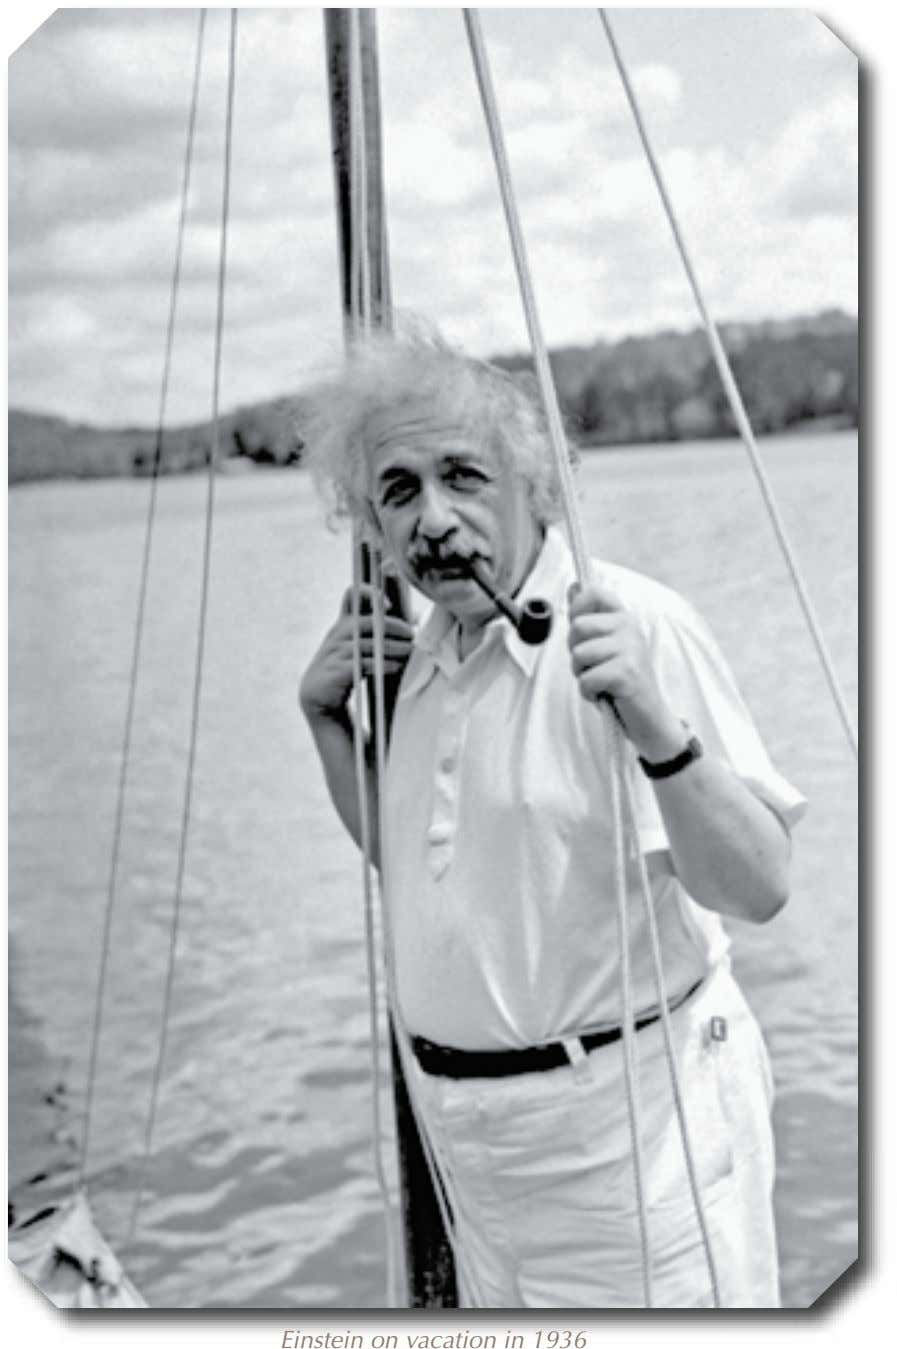 Einstein on vacation in 1936